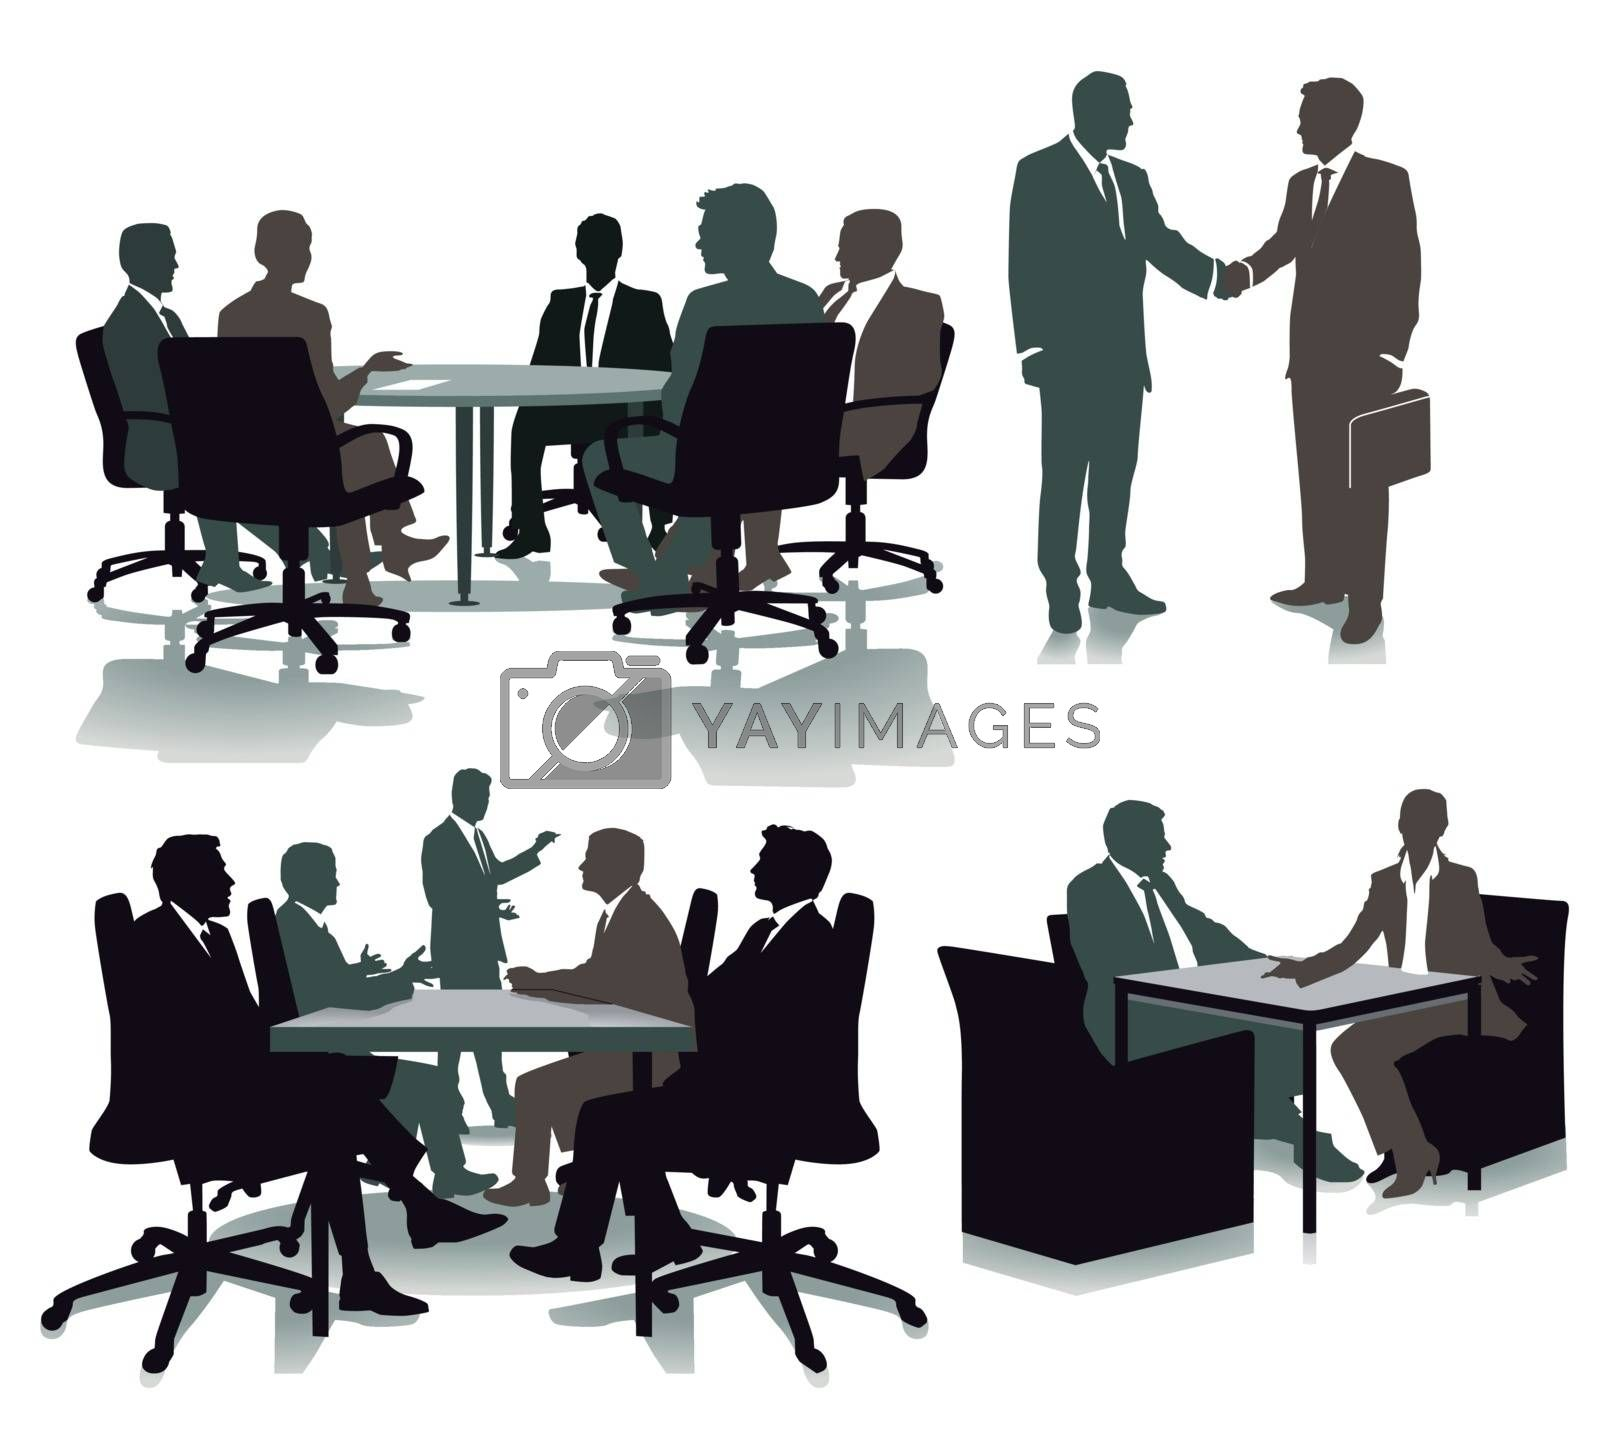 Consulting in the office, illustration